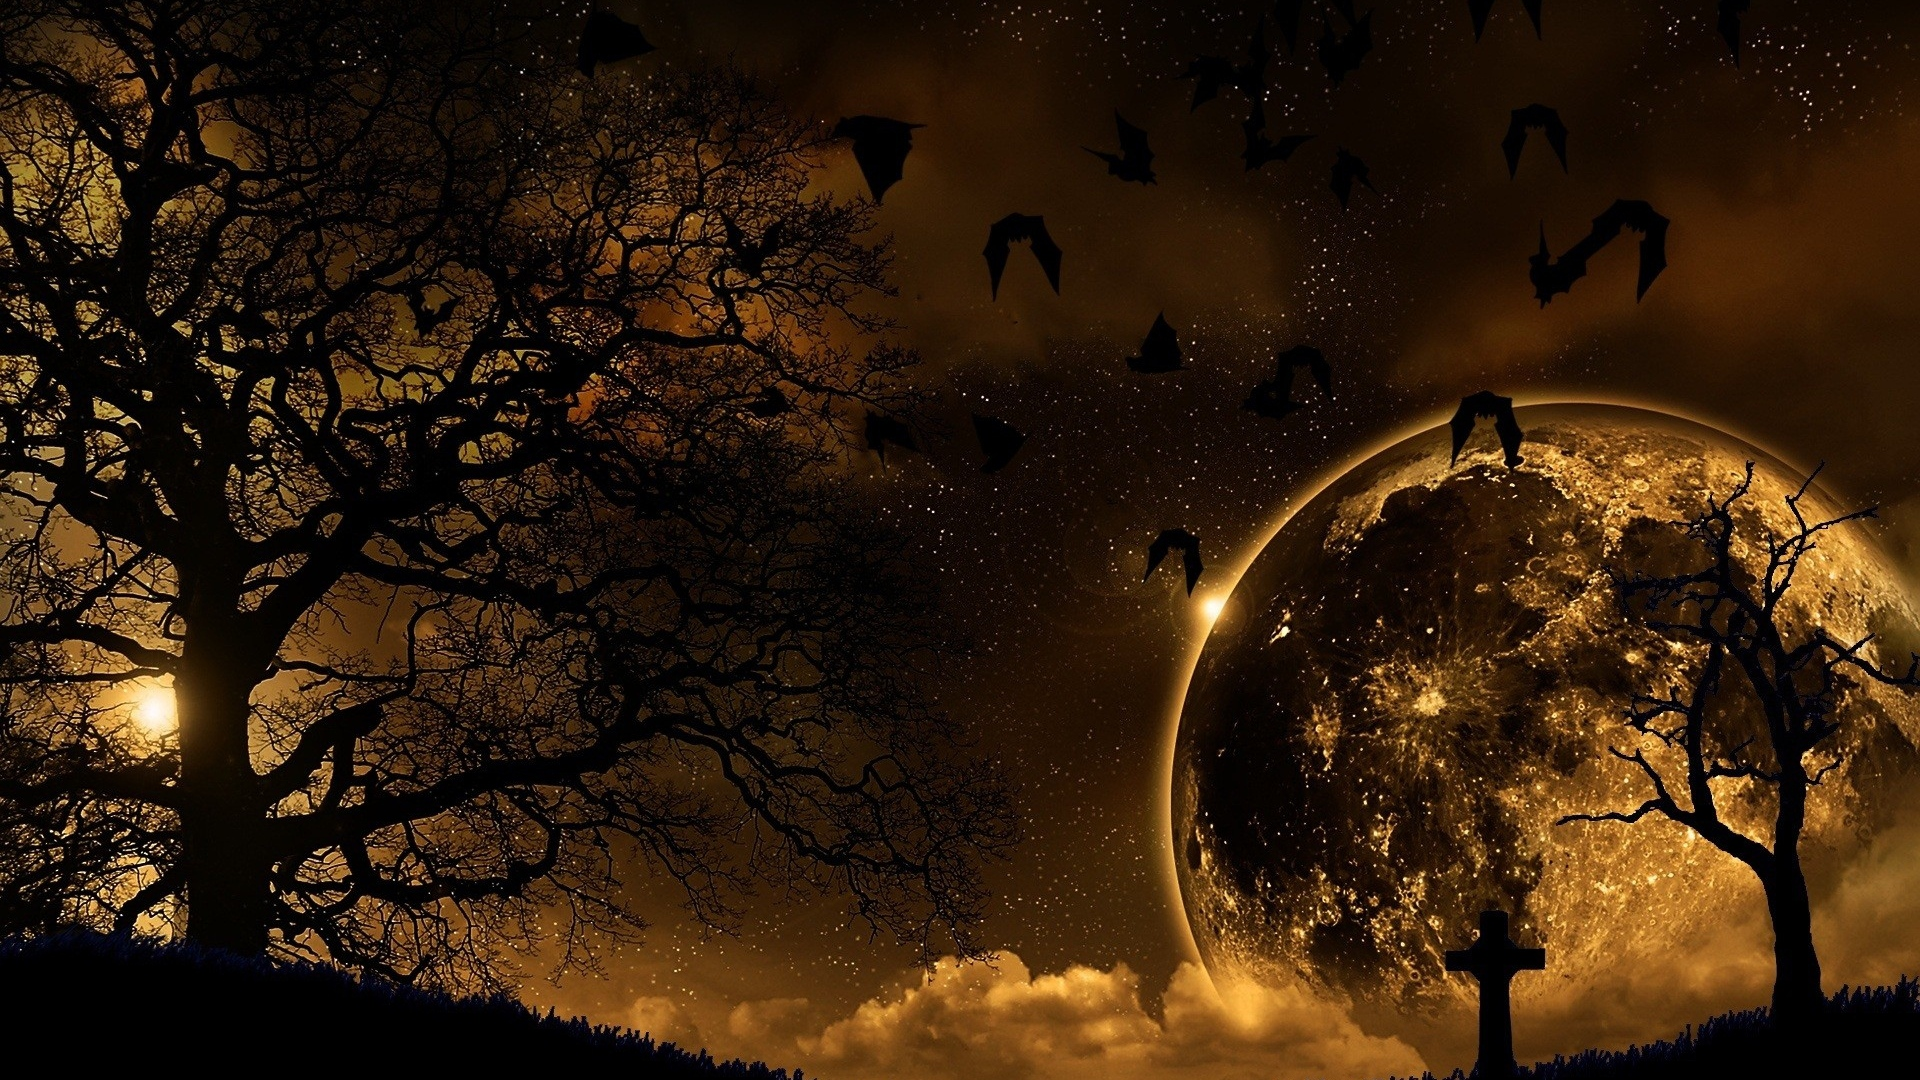 Download Night Nature Hd Wallpapers Gallery